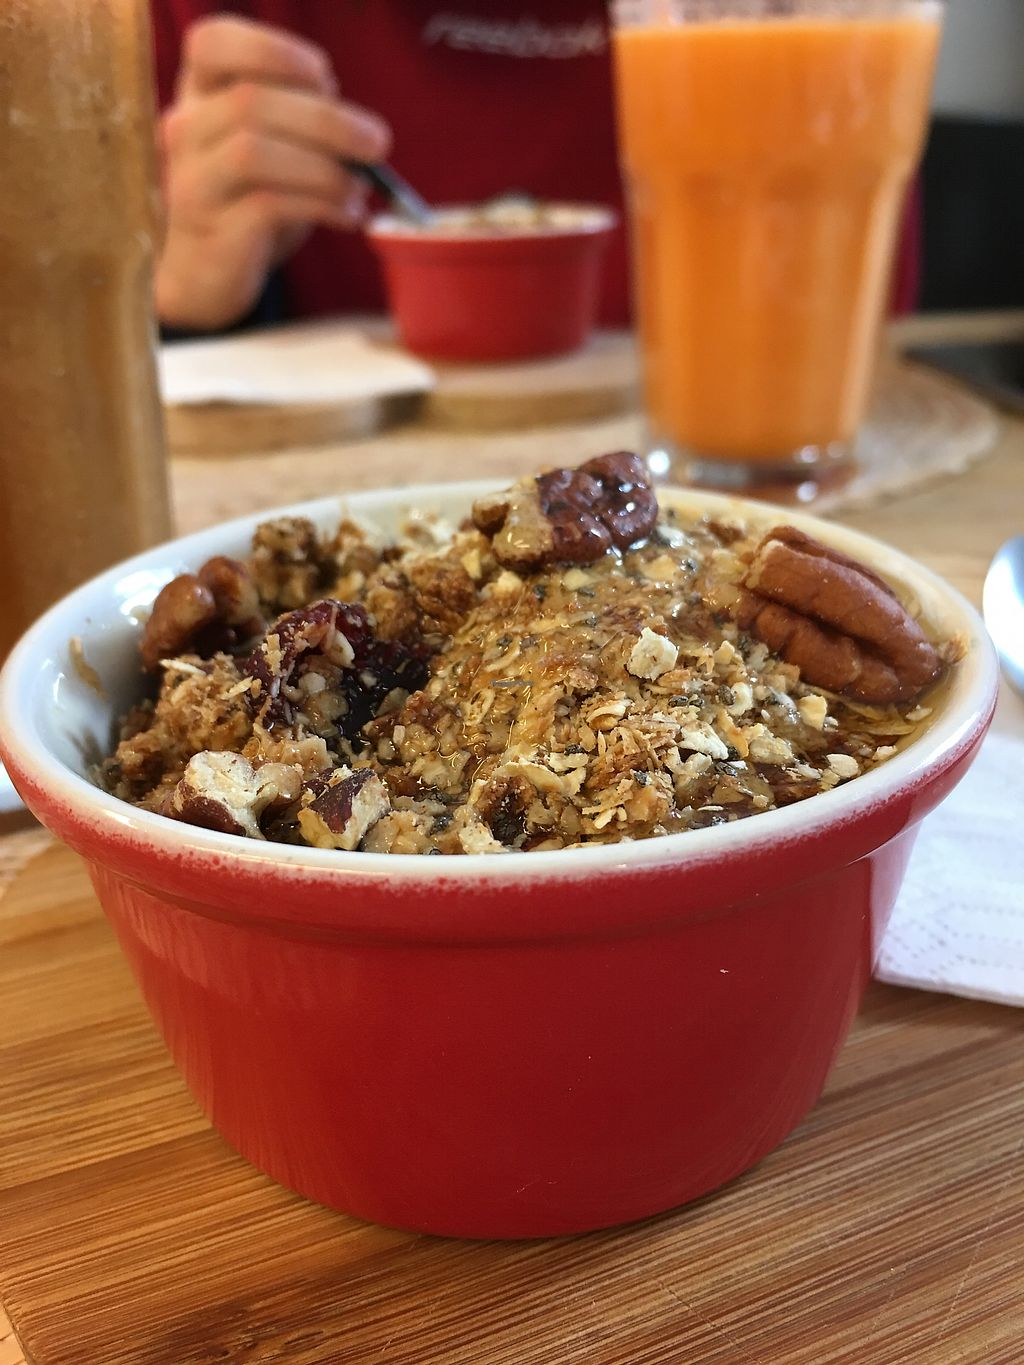 "Photo of Coq and Roll Market  by <a href=""/members/profile/LiamCooch"">LiamCooch</a> <br/>Best granola ever! <br/> November 20, 2017  - <a href='/contact/abuse/image/82542/327431'>Report</a>"